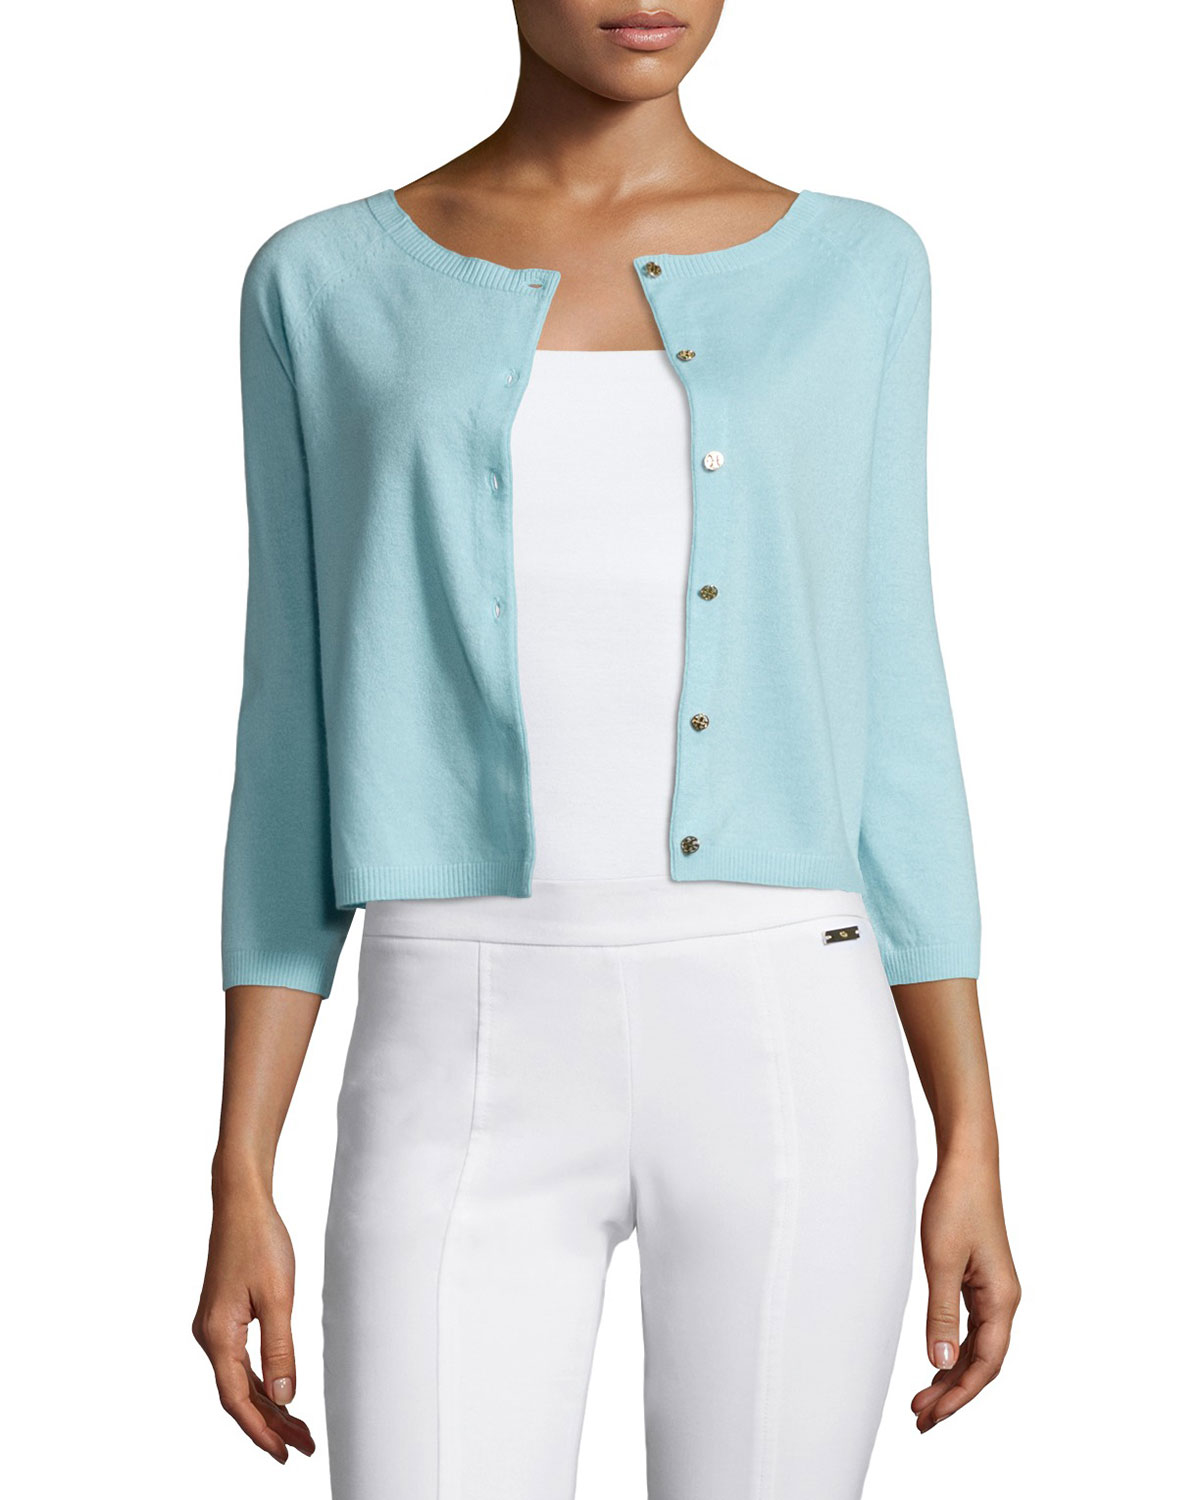 Tory burch Rosemary Cashmere Cardigan in Blue | Lyst